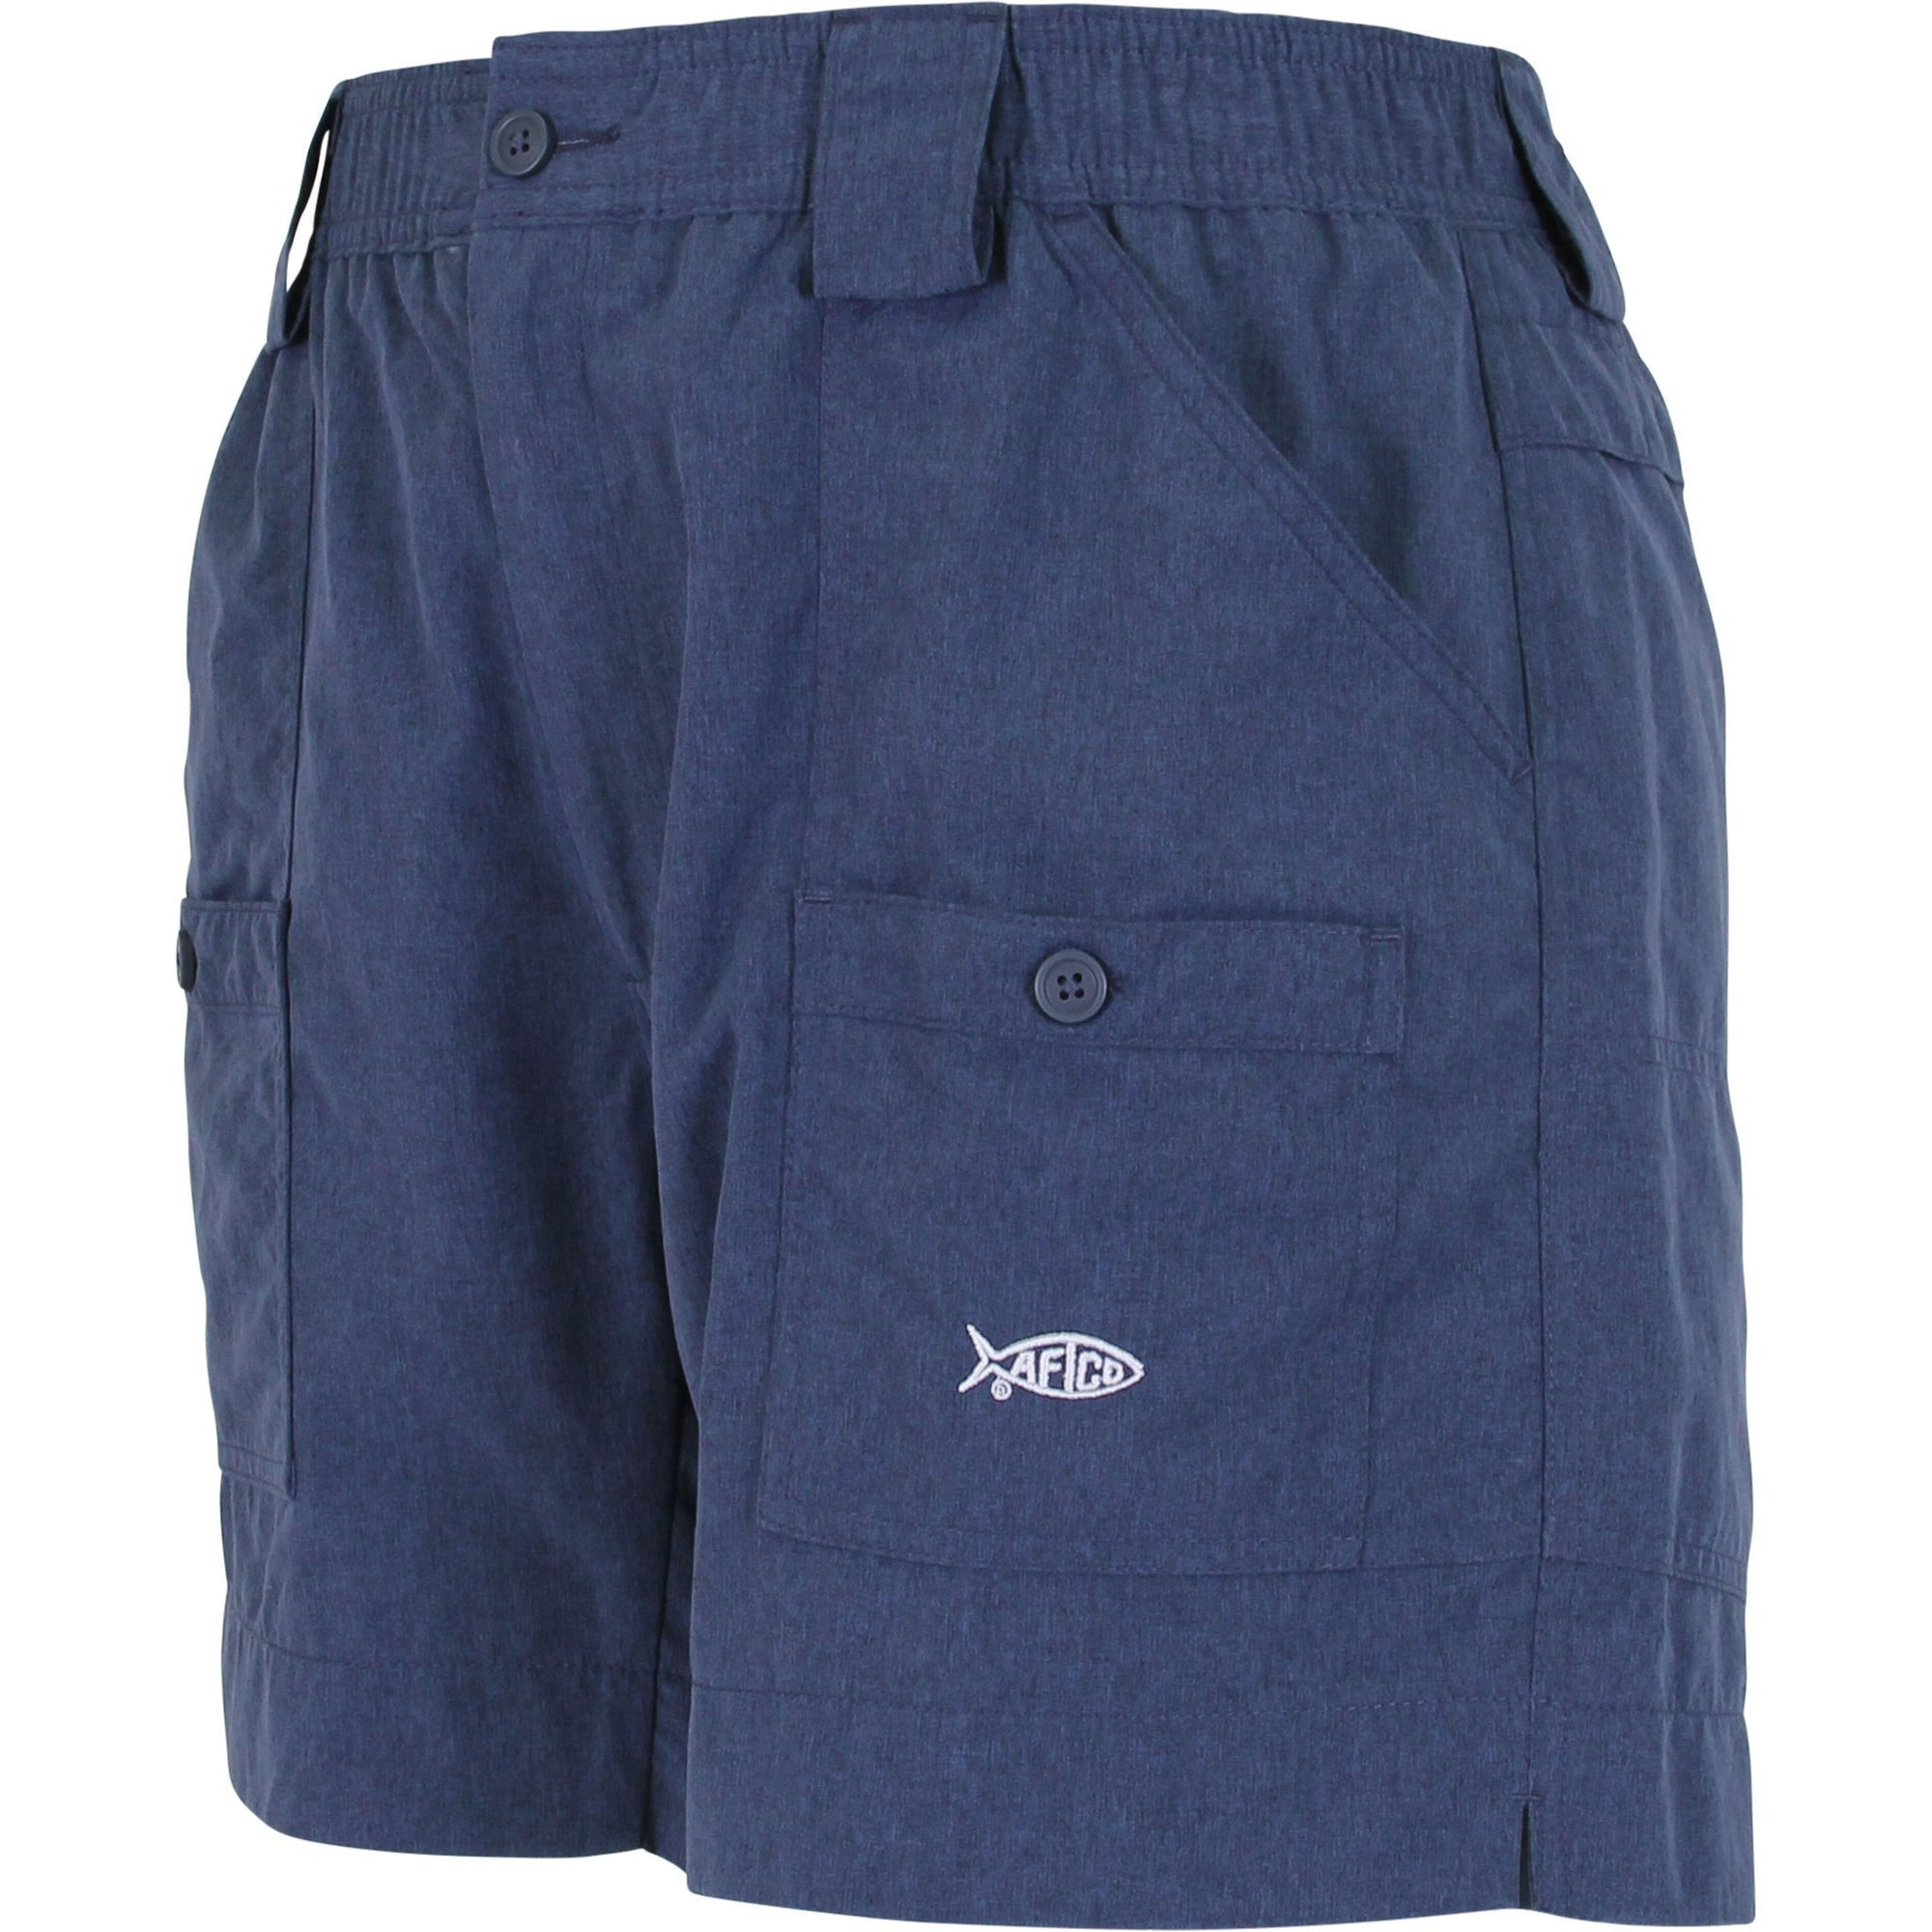 AFTCO MFG Men's Shorts NAVY HEATHER / 28 Aftco Heather Original Fishing Shorts - 6 Inch || David's Clothing ME4NVYH